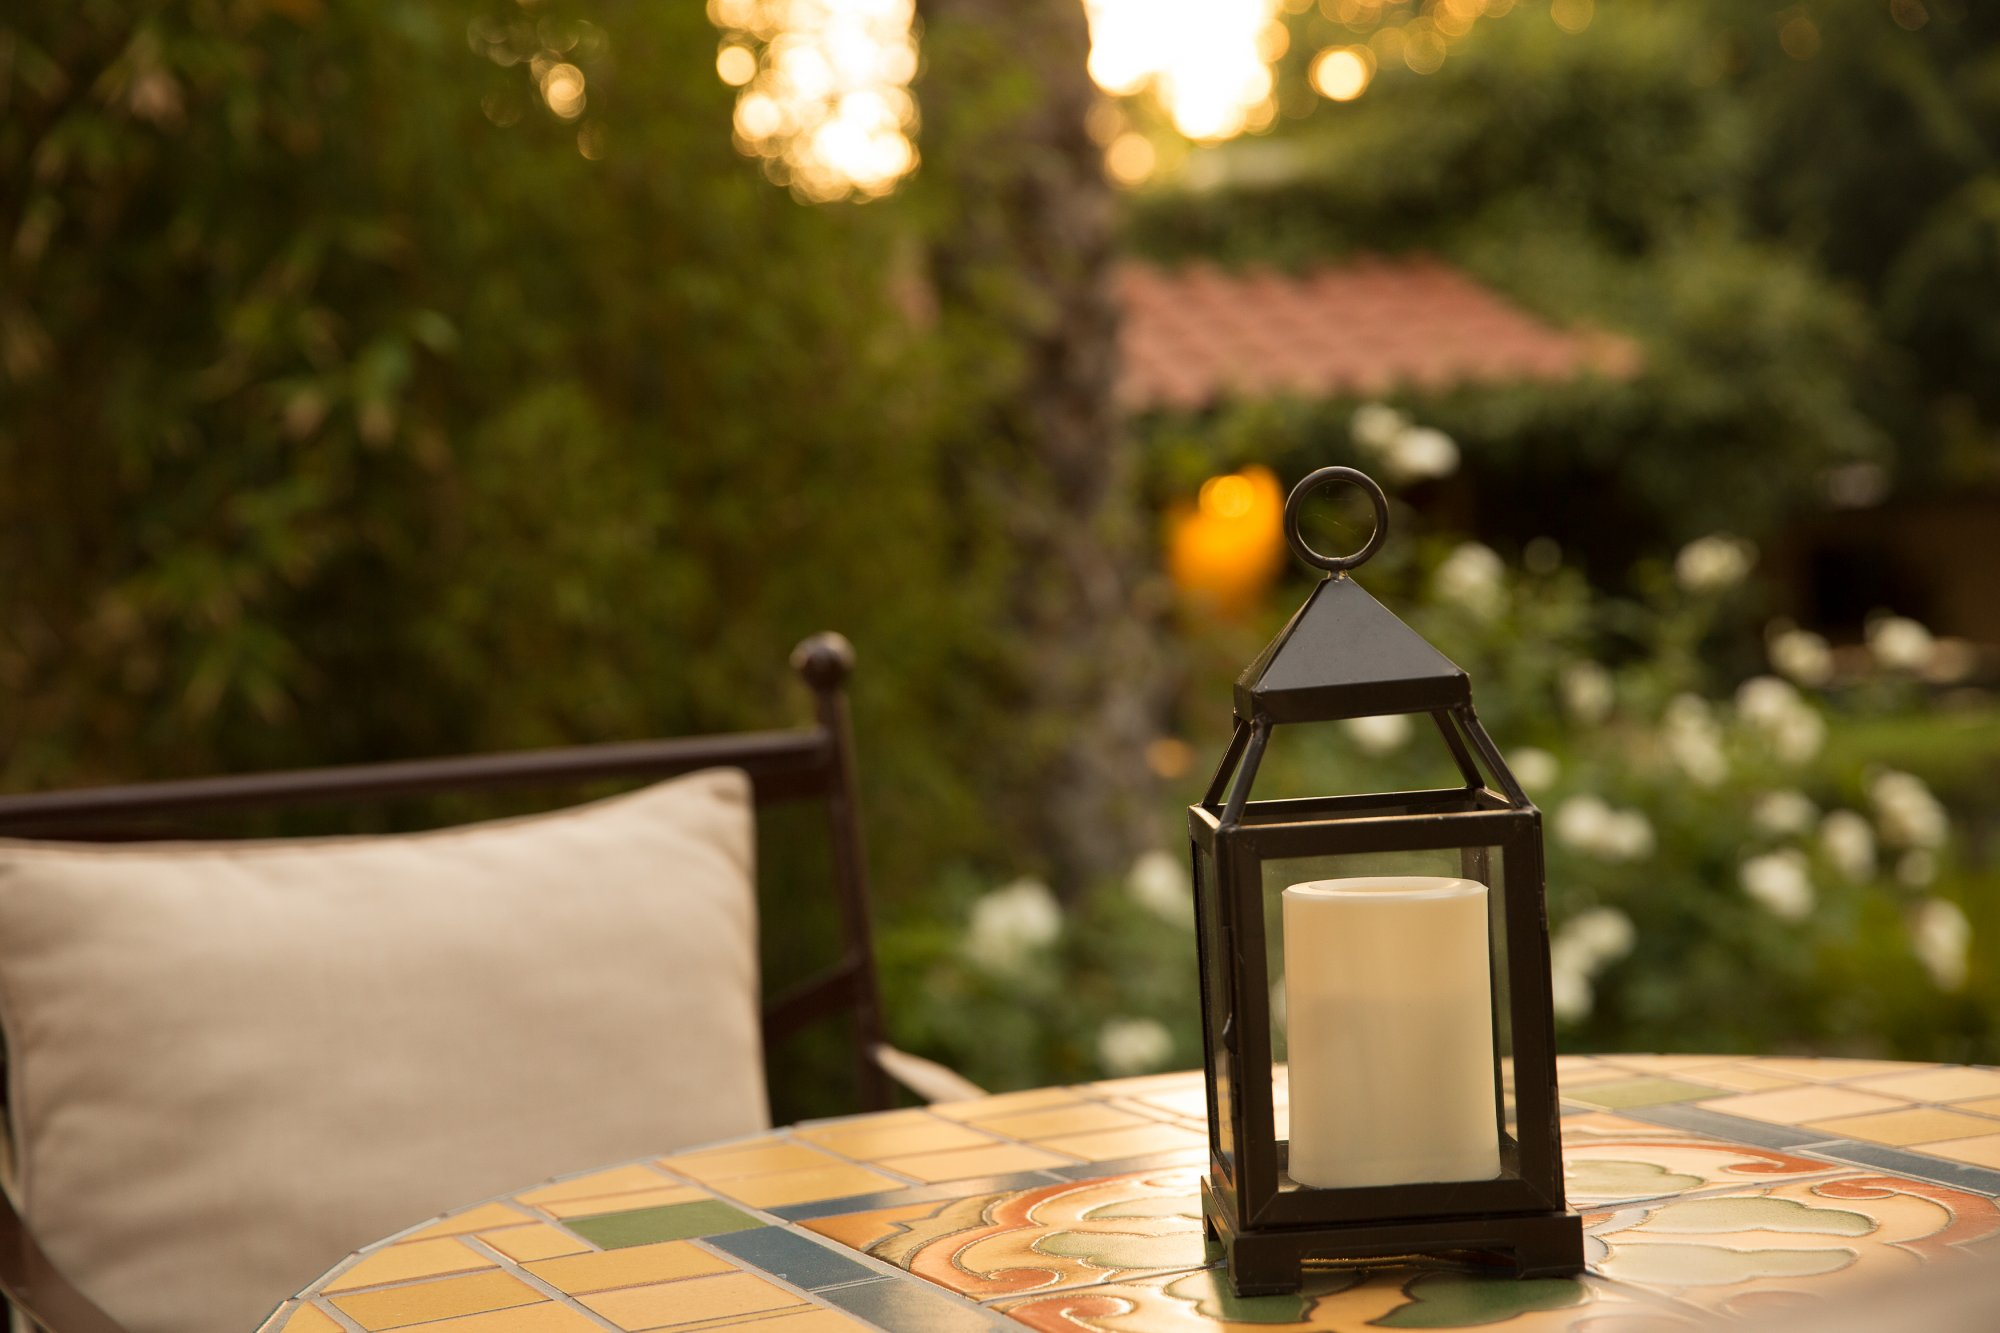 A lantern on a table